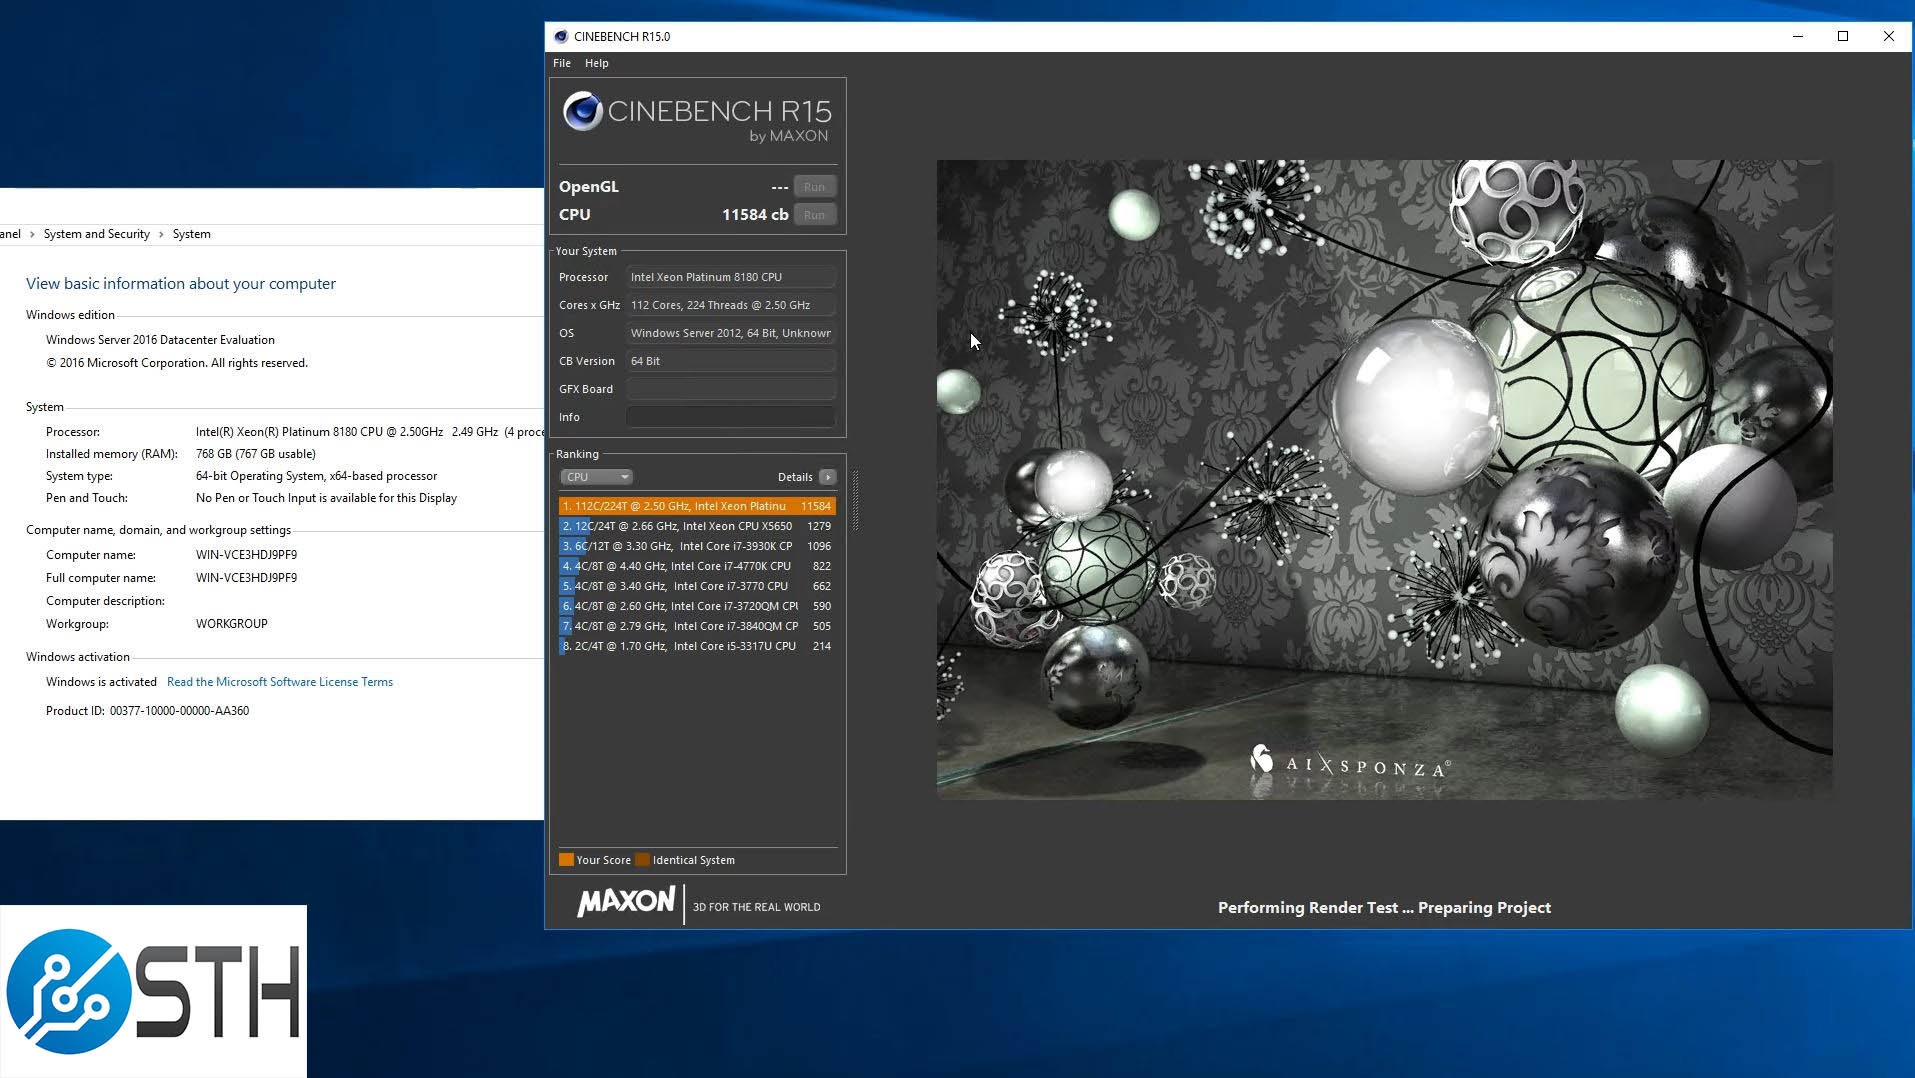 Intel 4P Skylake SP Cinebench R15 World Record Run Result 11584